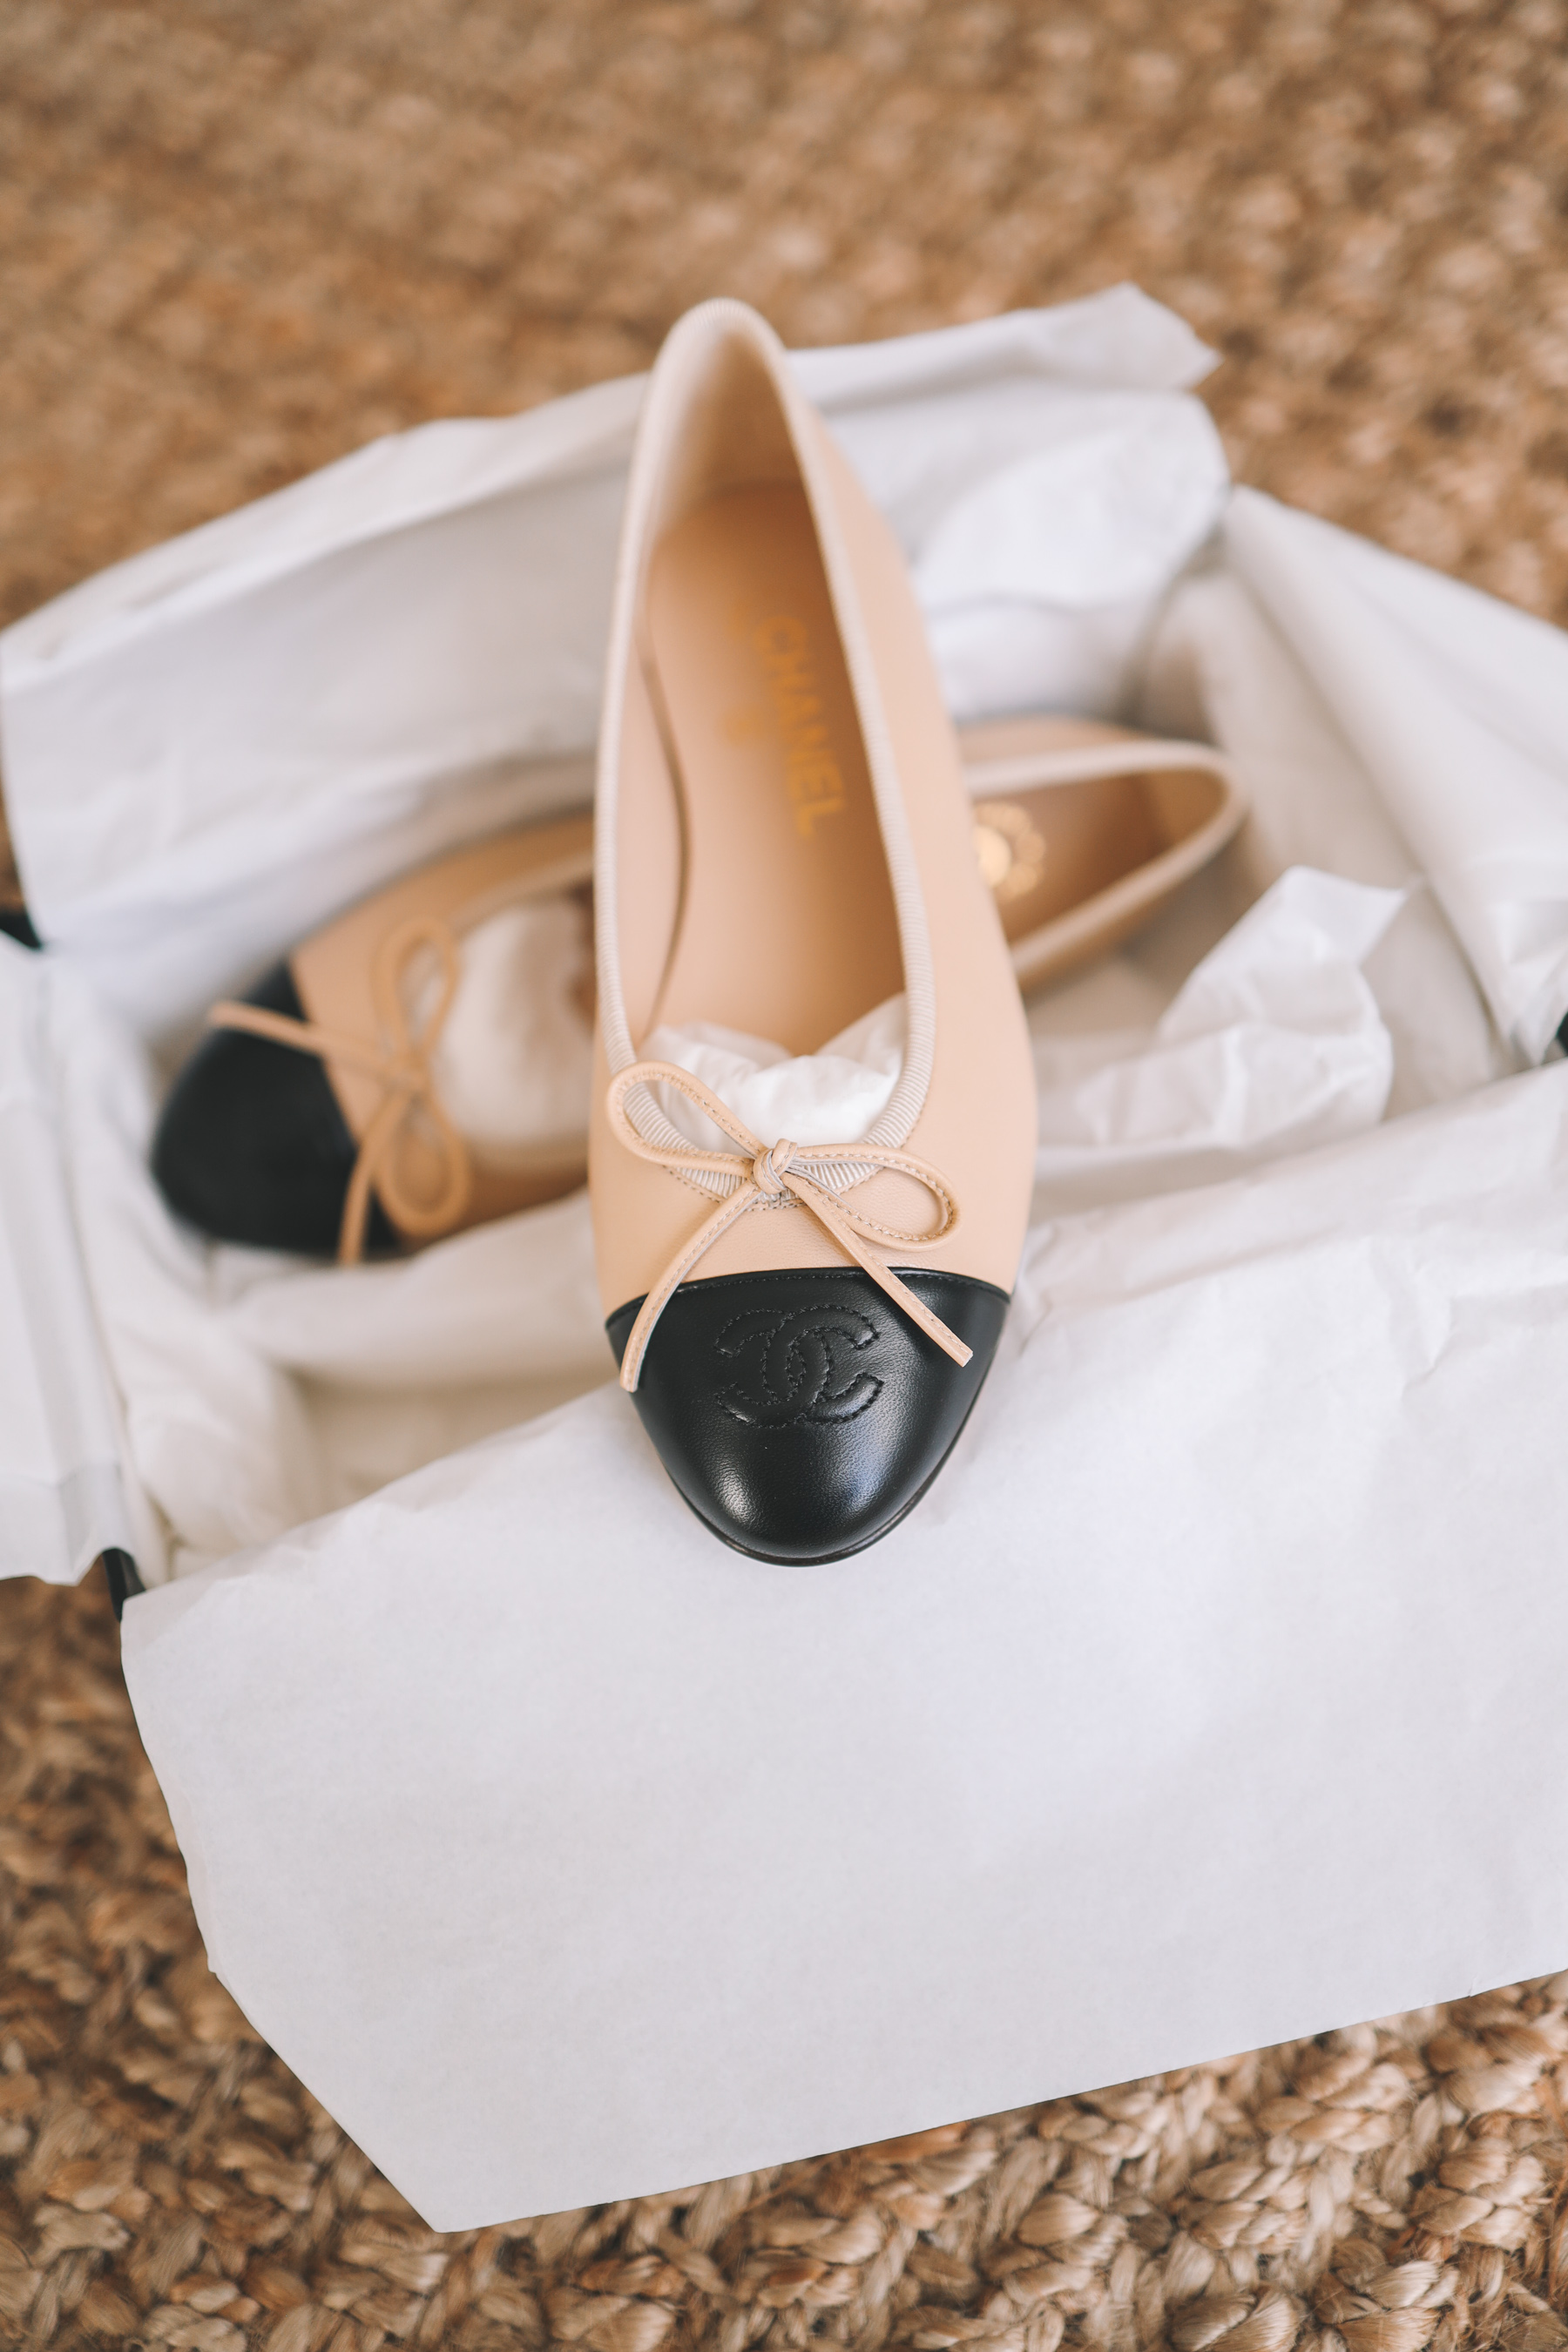 Chanel Cap Toe Ballerina Flats Review Ebay S Authenticate Program